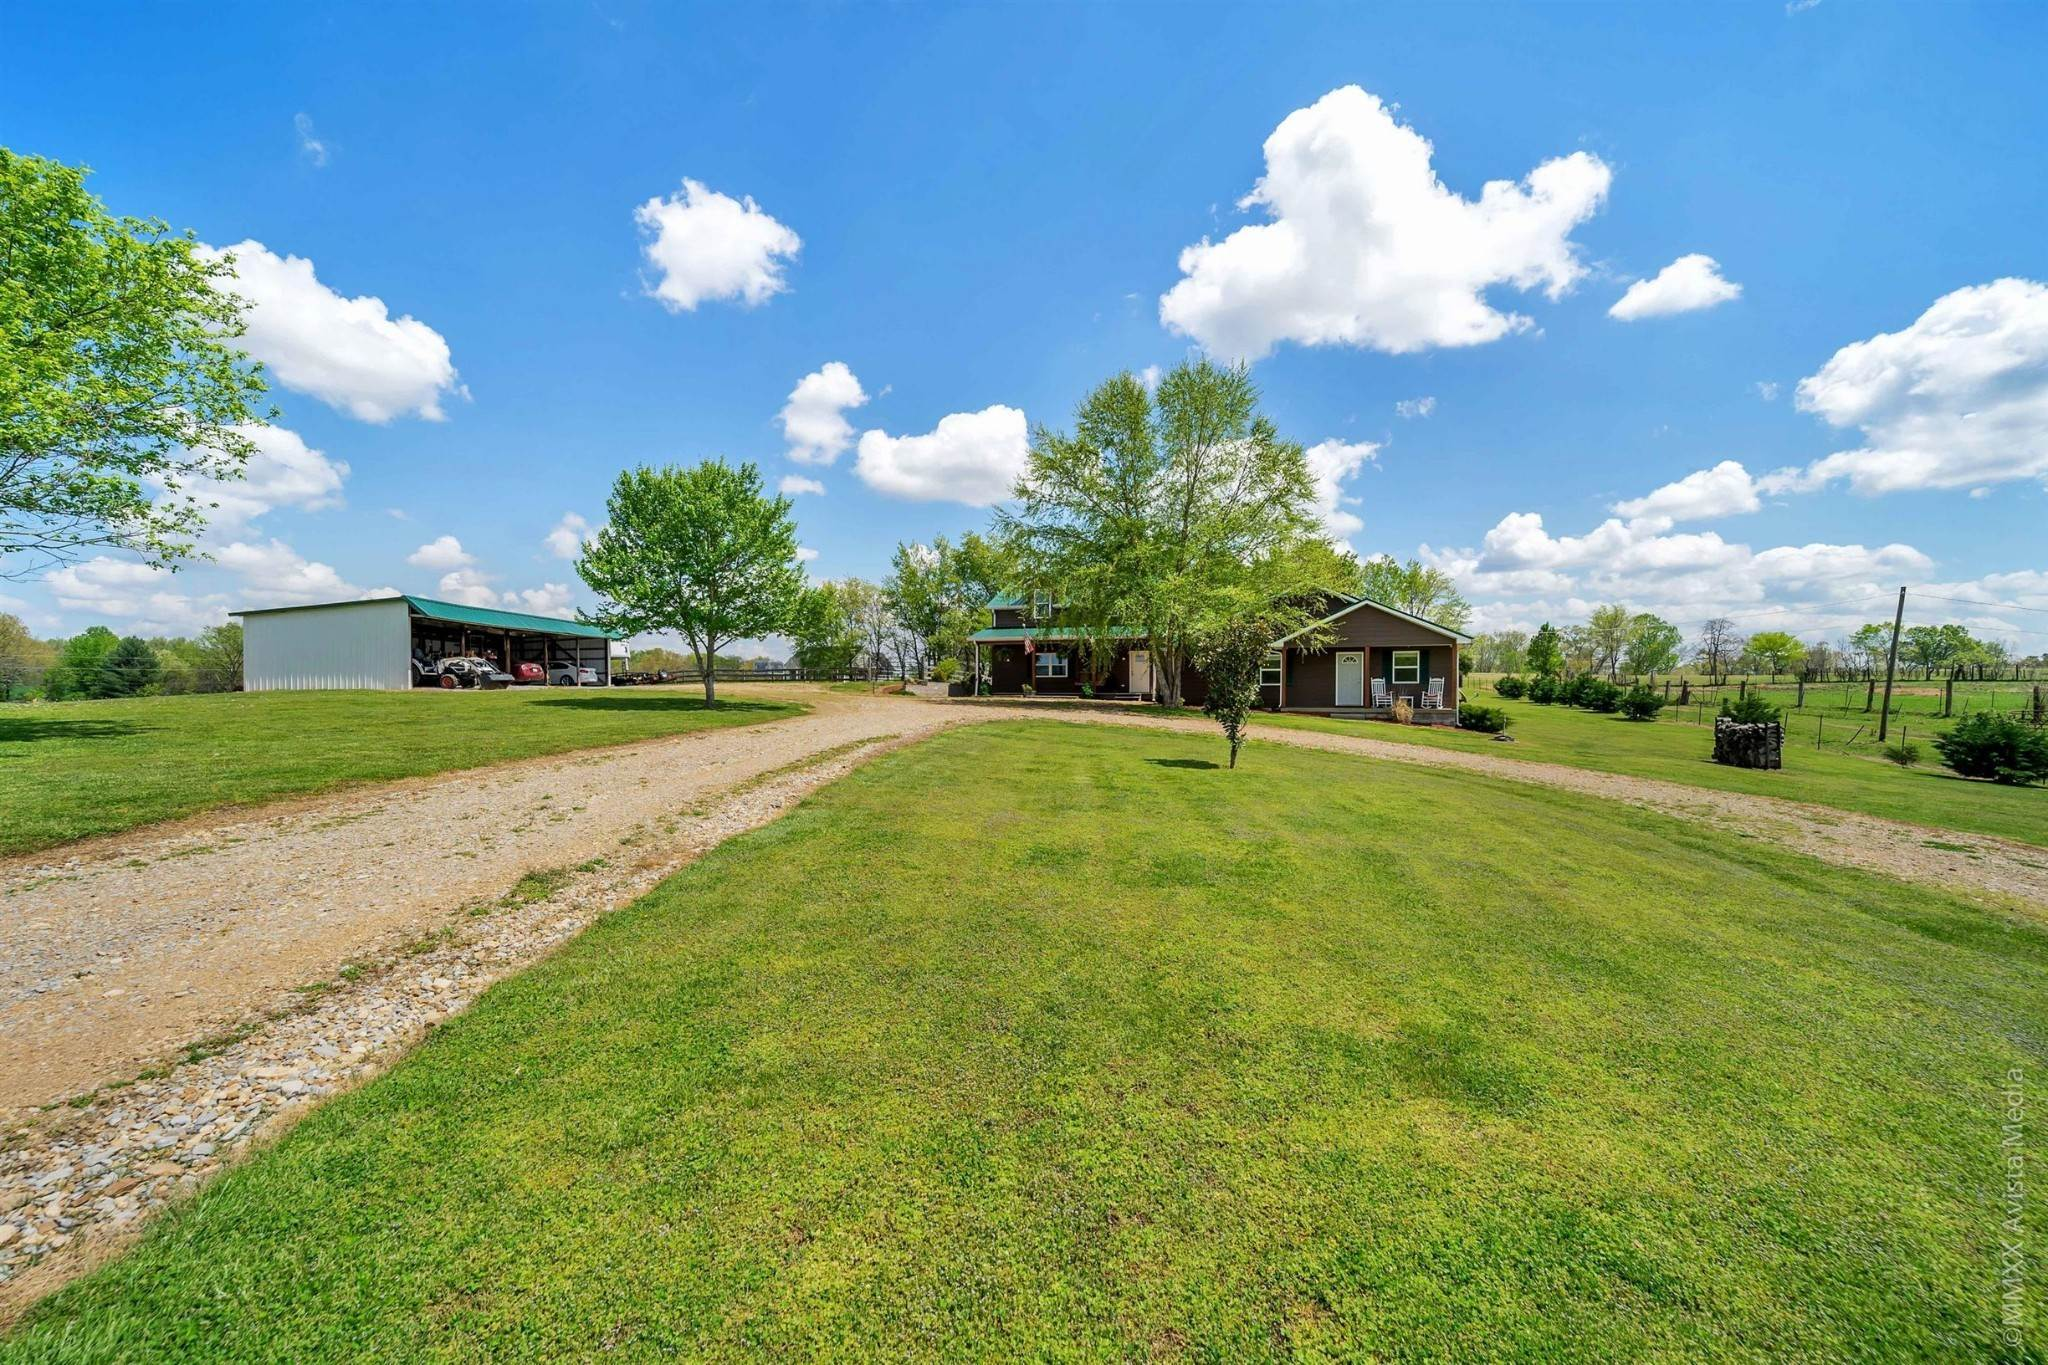 Single Family Homes for Sale at 7870 Mill Road Cross Plains, Tennessee 37049 United States